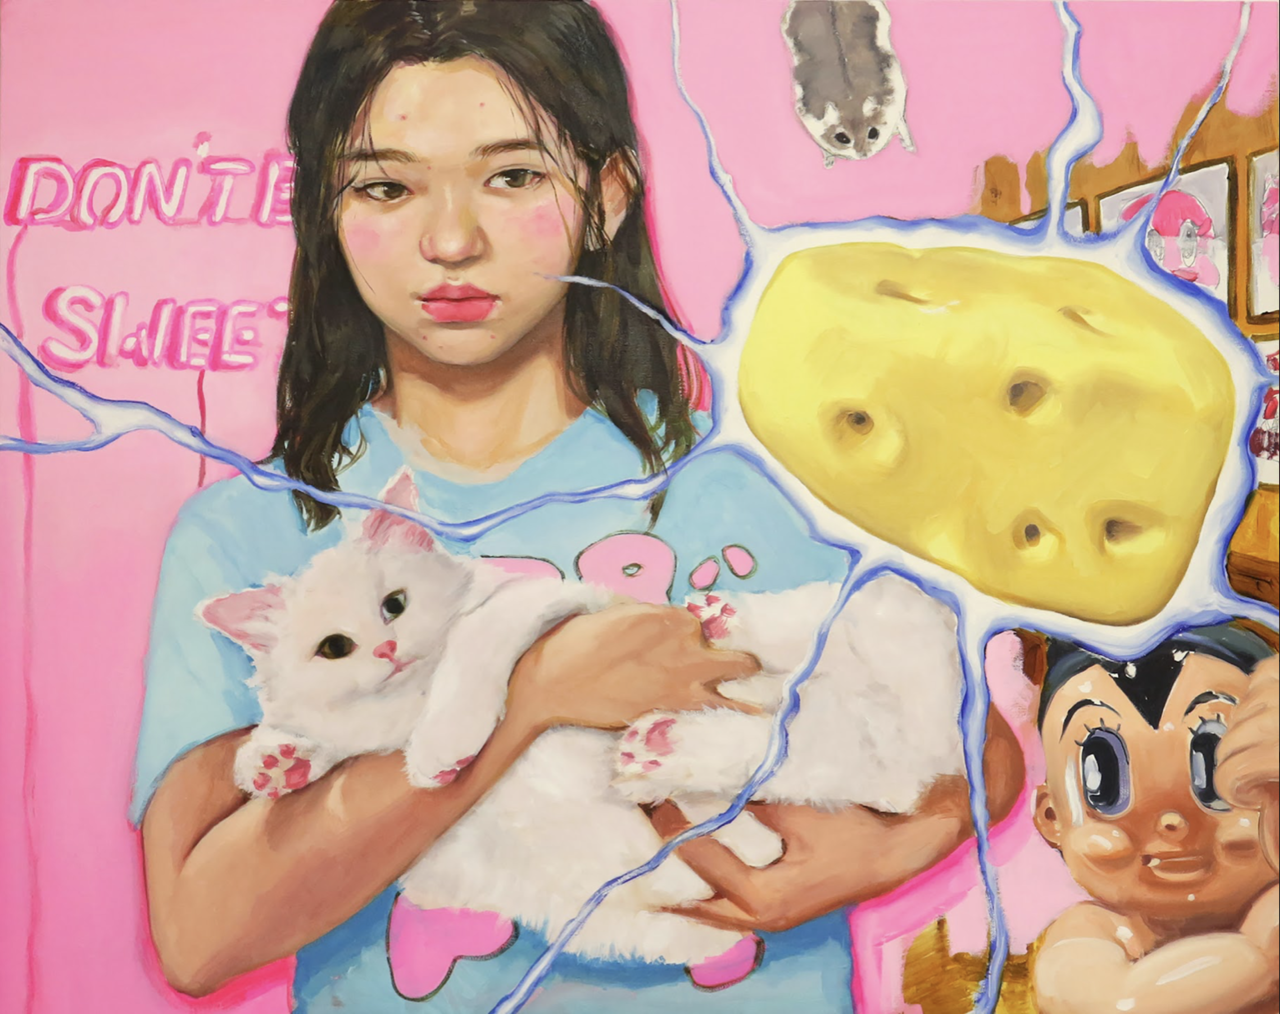 Cheee-, 2020, oil on canvas, 72.7 x 90.9 (cm)